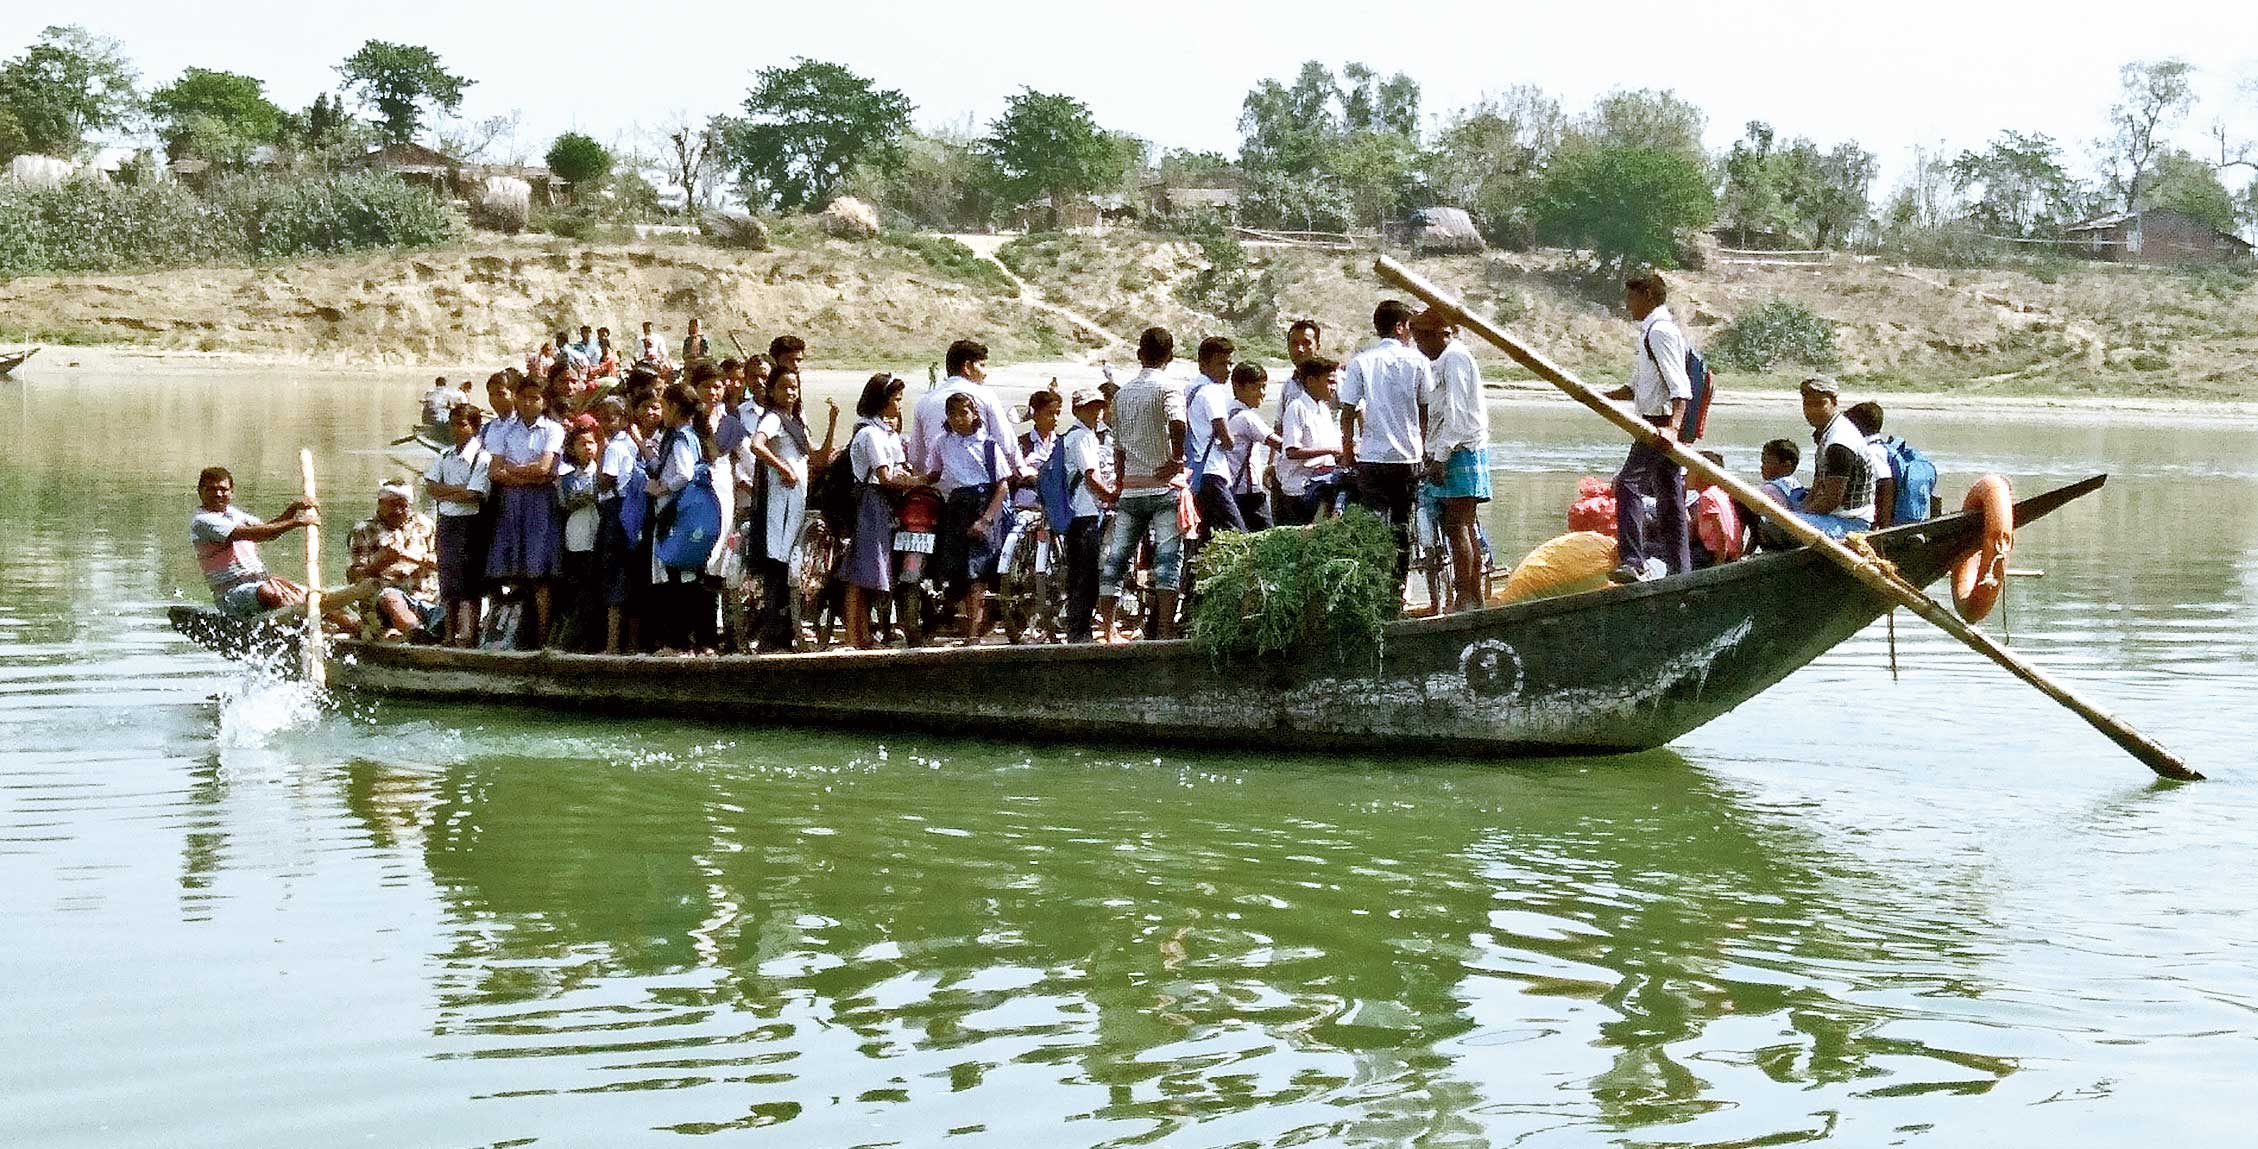 School students cross the canal on a boat in Suti.